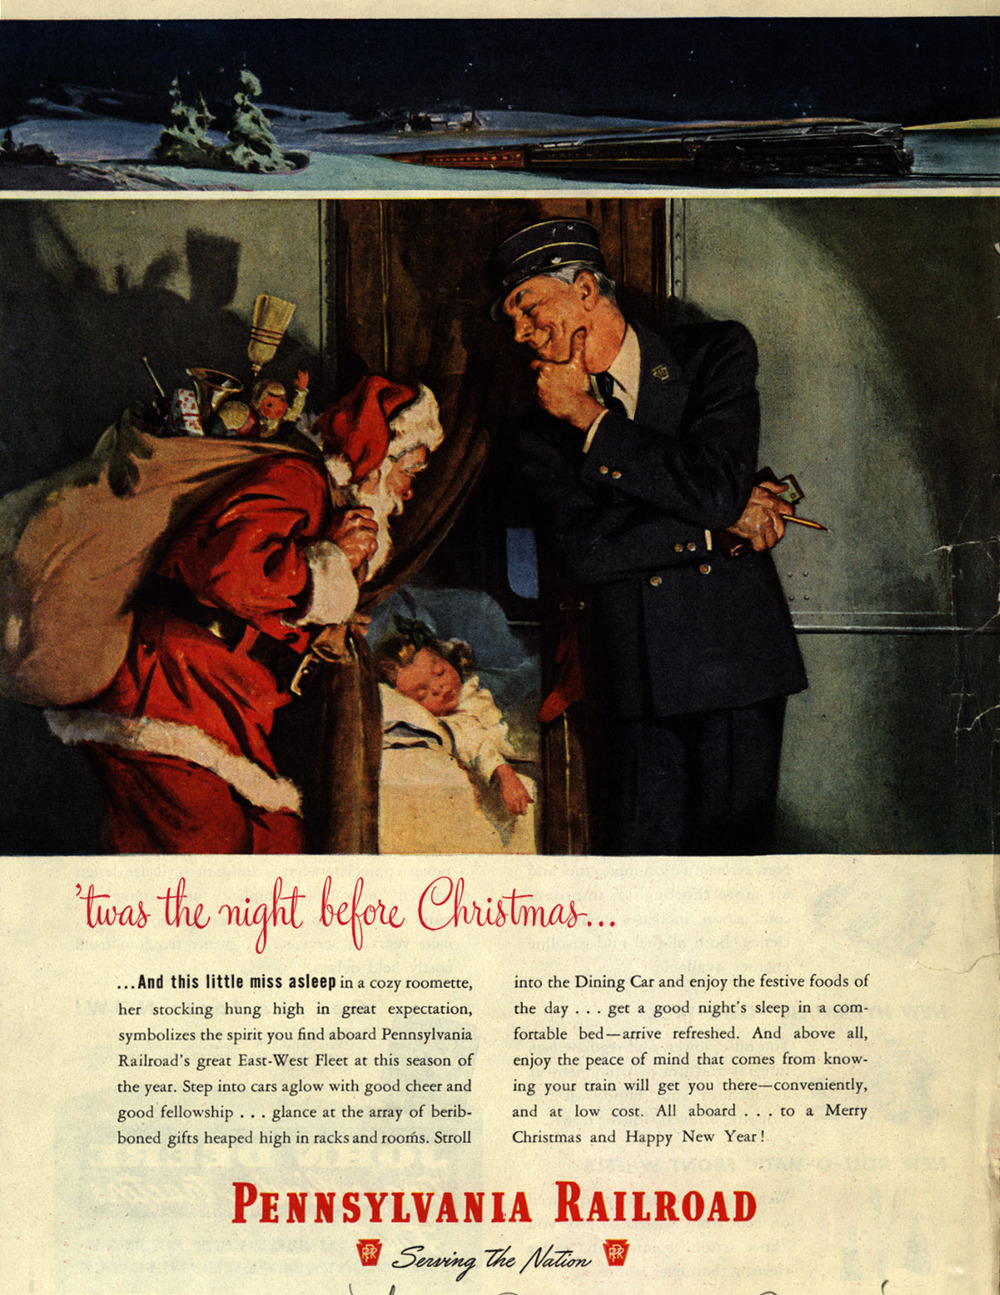 1948 holiday advertisement for the Pennsylvania Railroad.